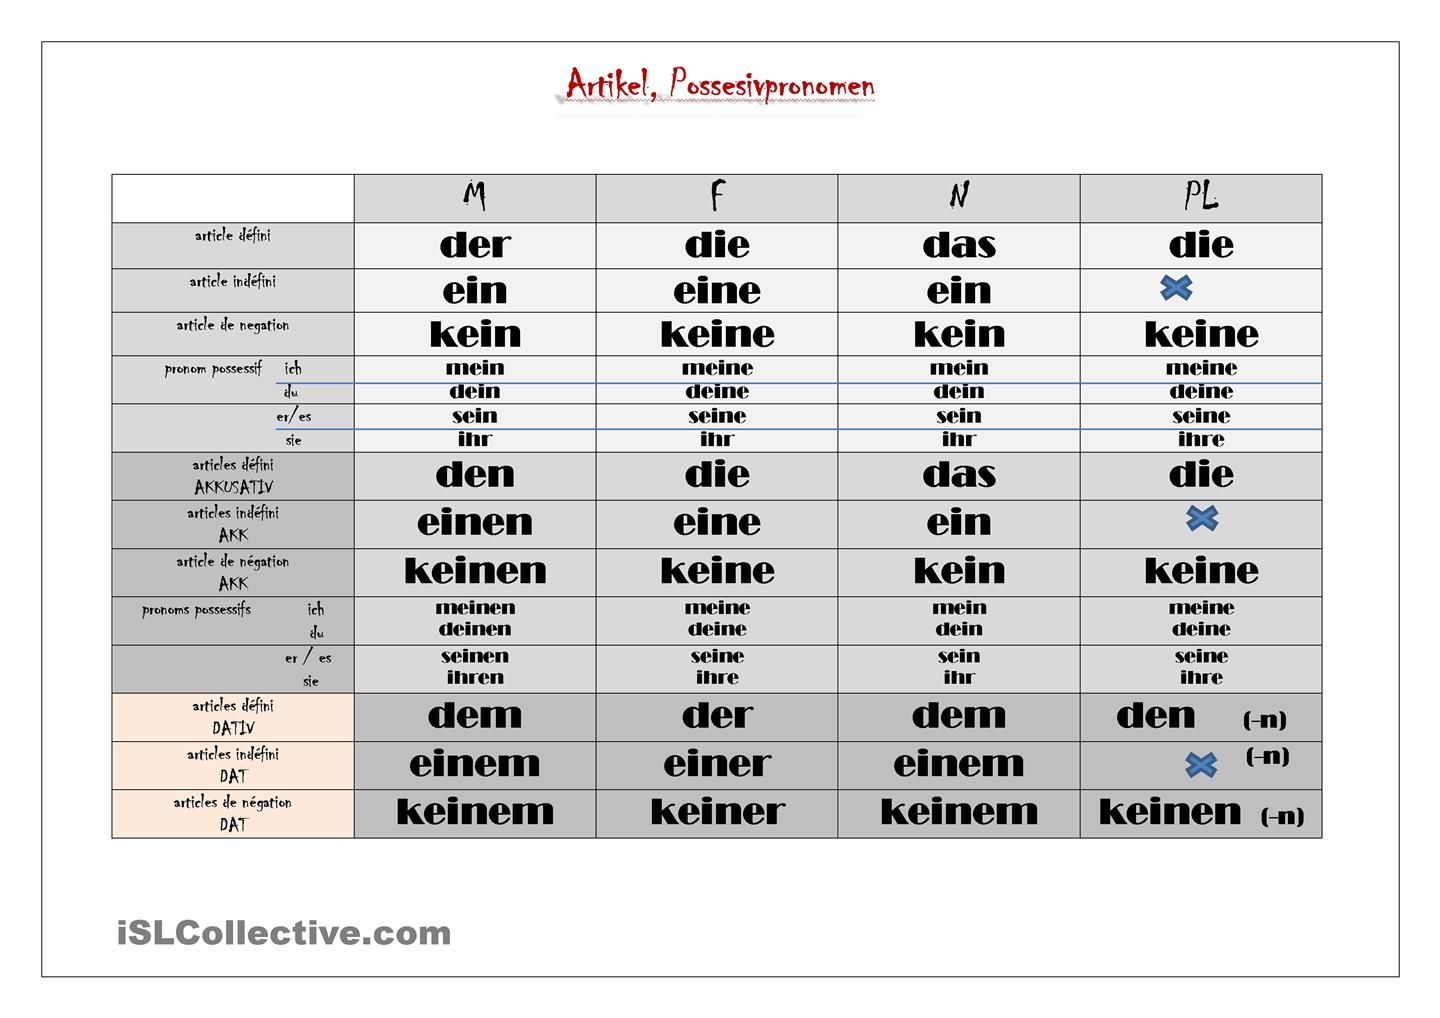 artikel pronomen | German language, Deutsch and Worksheets